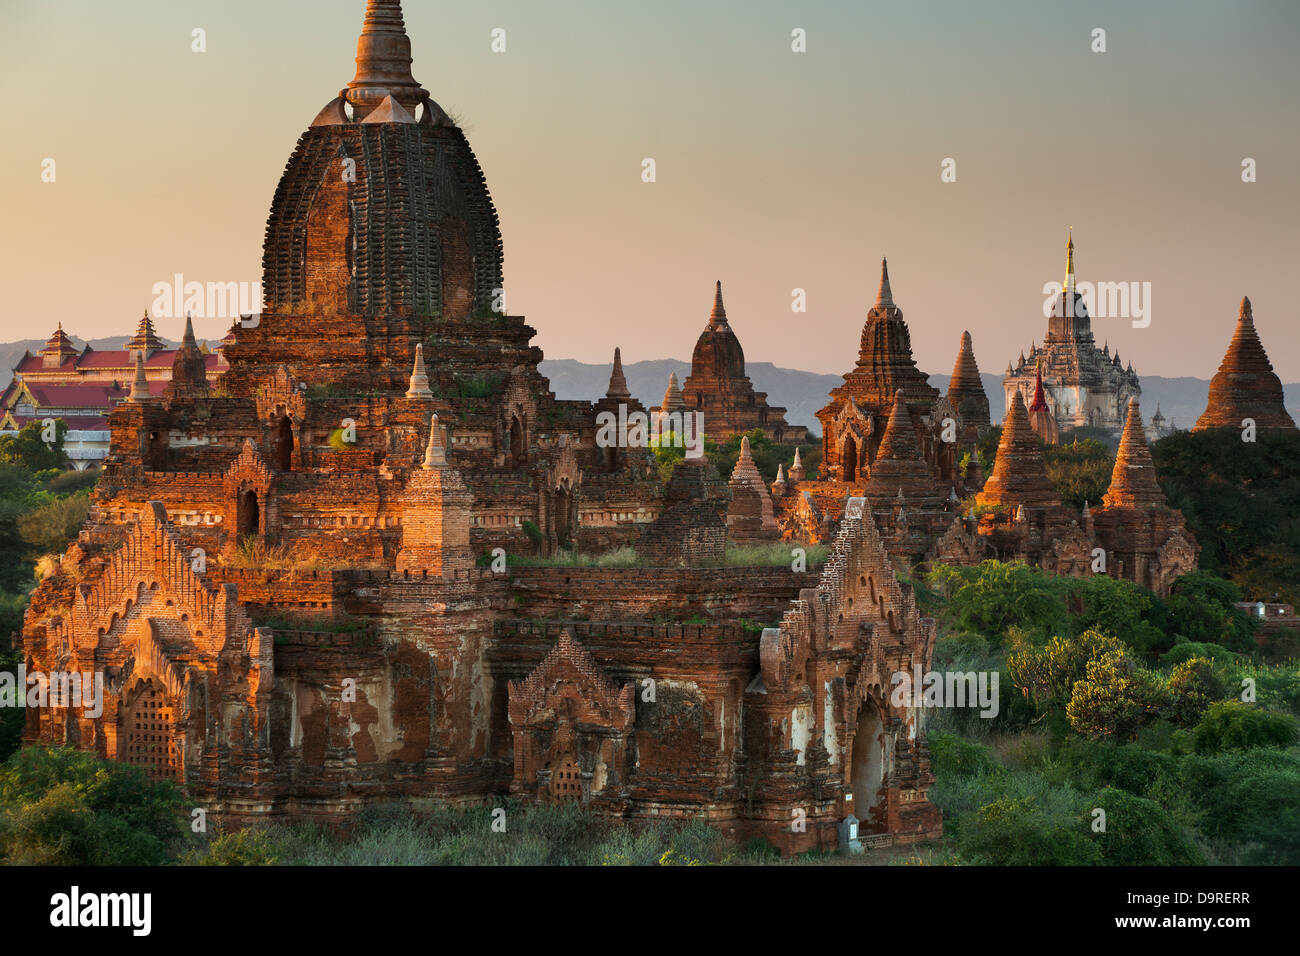 the Temples of Bagan, Myanmar (Burma) - Stock Image